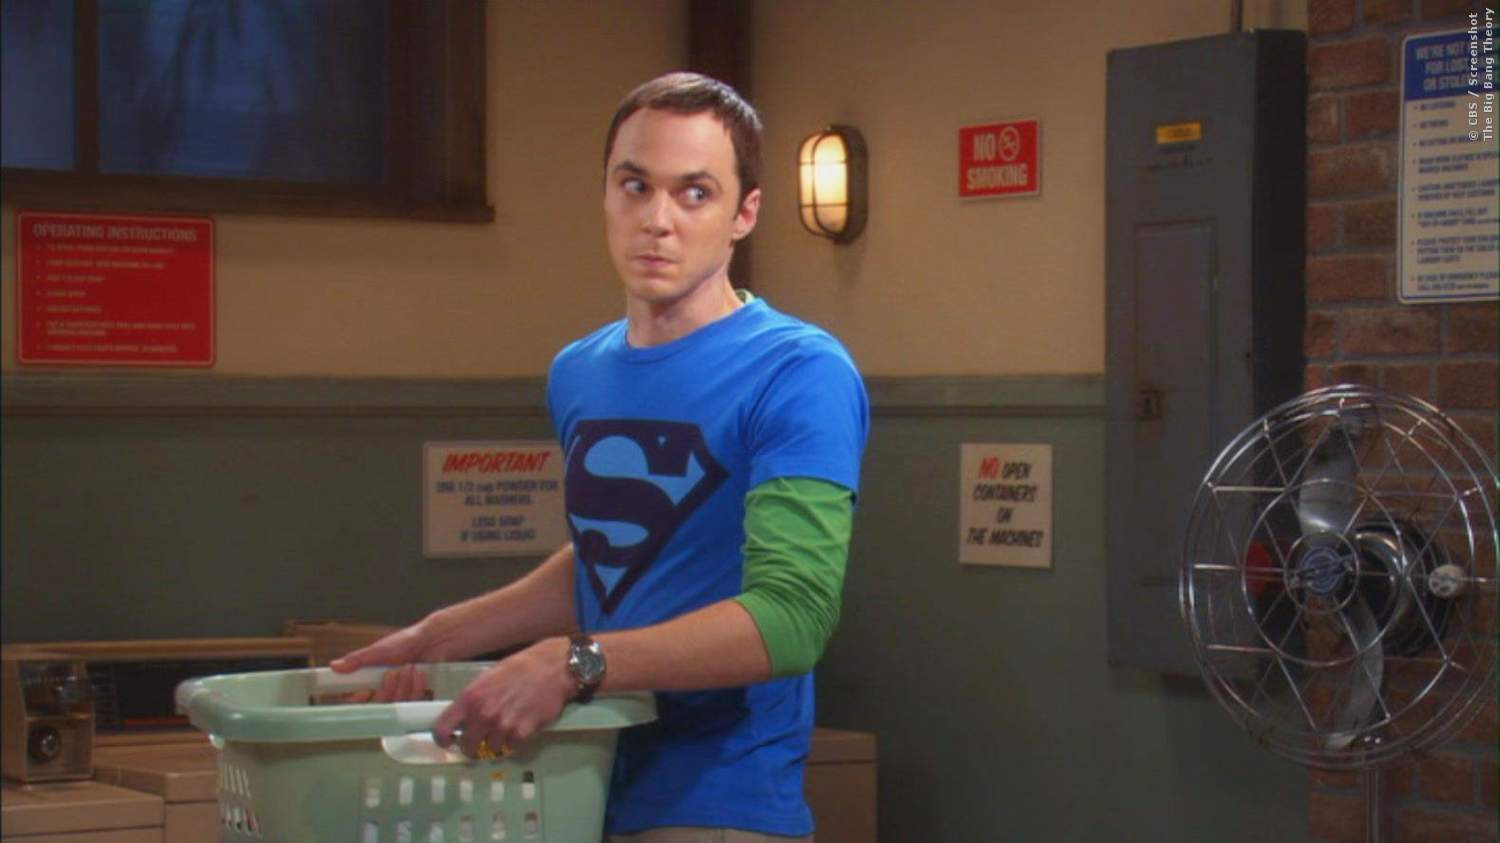 Big Bang Theory Bettwäsche Tbbt Sheldon Macht Auf Harry Potter Trailerseite Film Tv